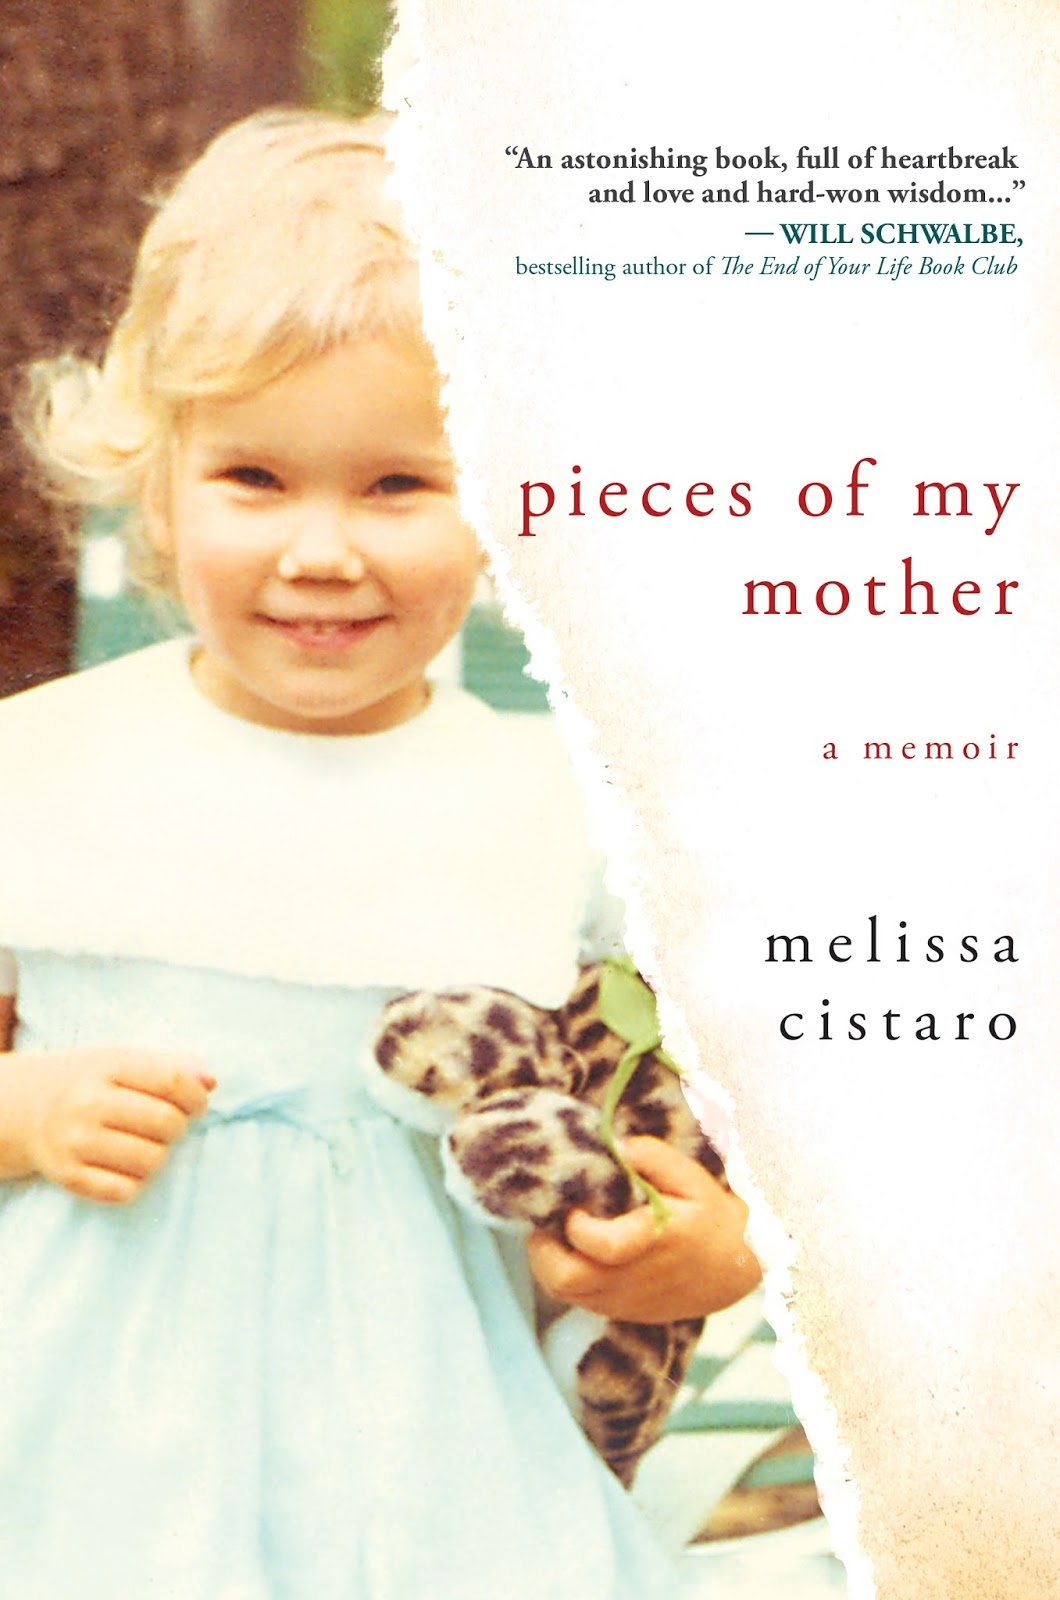 Carolineleavittville Melissa Cistaro Talks About Pieces Of My  Melissa Cistaro Talks About Pieces Of My Mother Why Writing Letters  Matters How As Book Events Host And Book Seller At Book Passage She Got  To Ask George